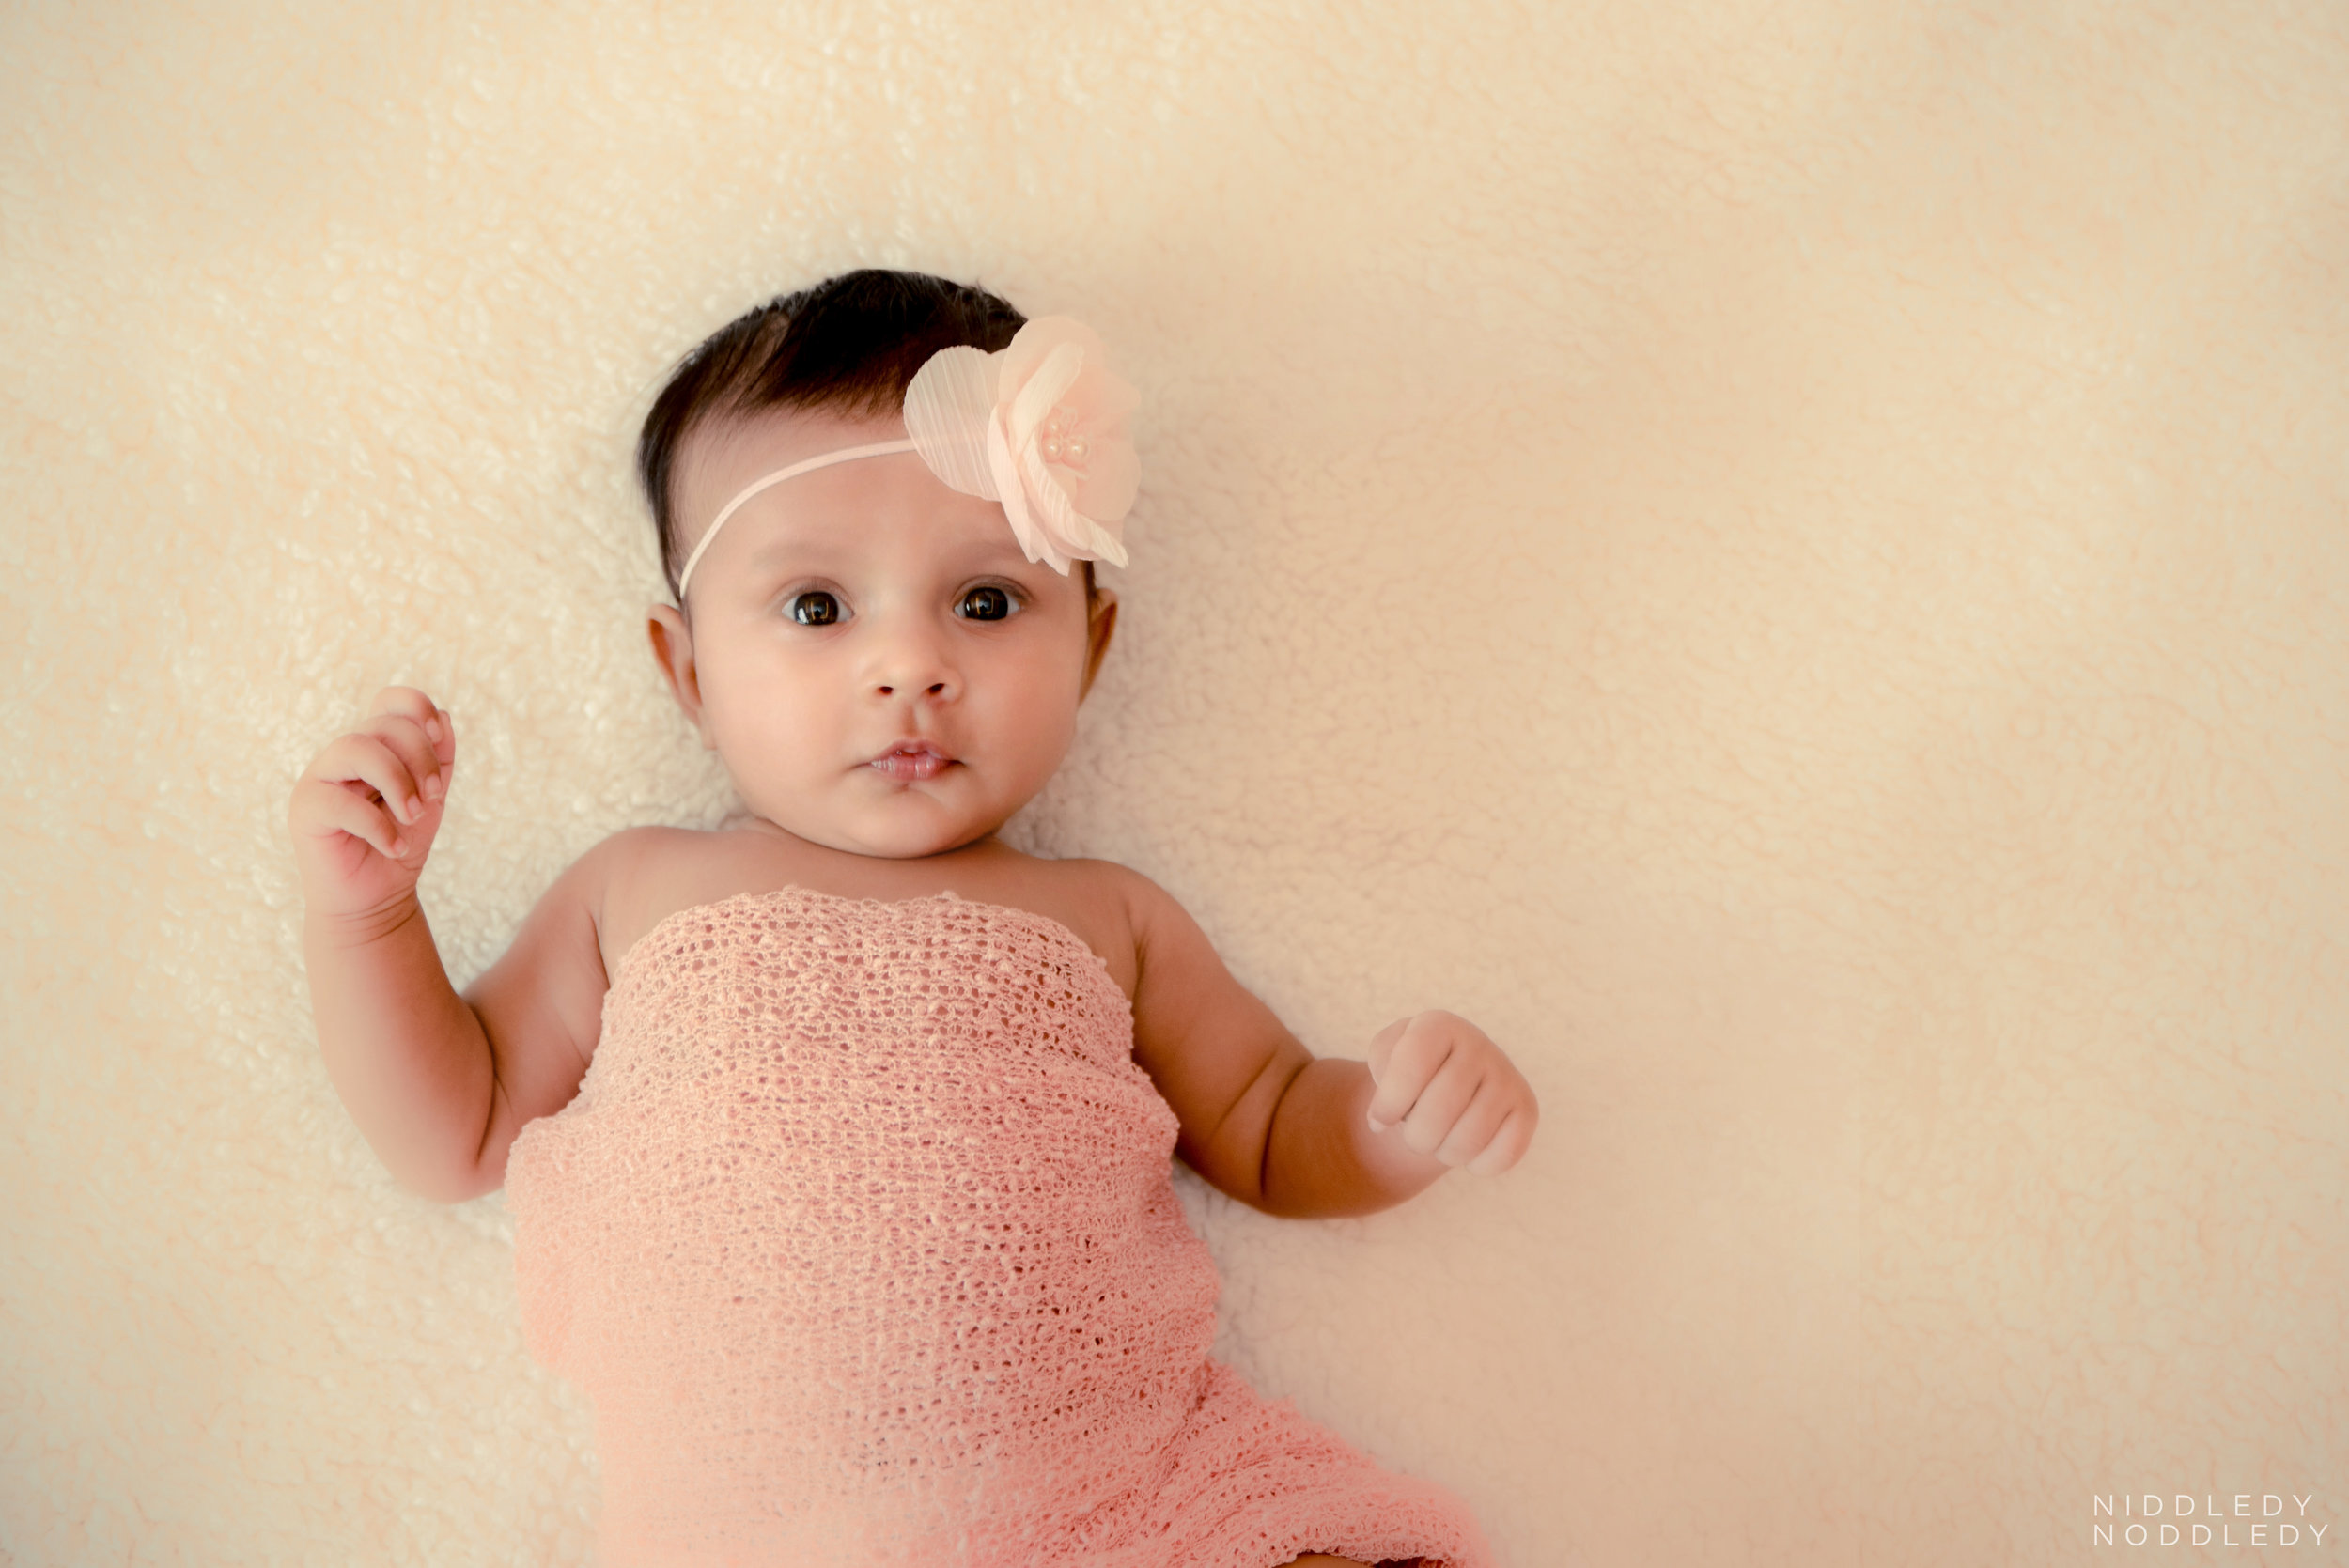 Anaisha Baby Photoshoot ❤ NiddledyNoddledy.com ~ Bumps to Babies Photography, Kolkata - 11.jpg